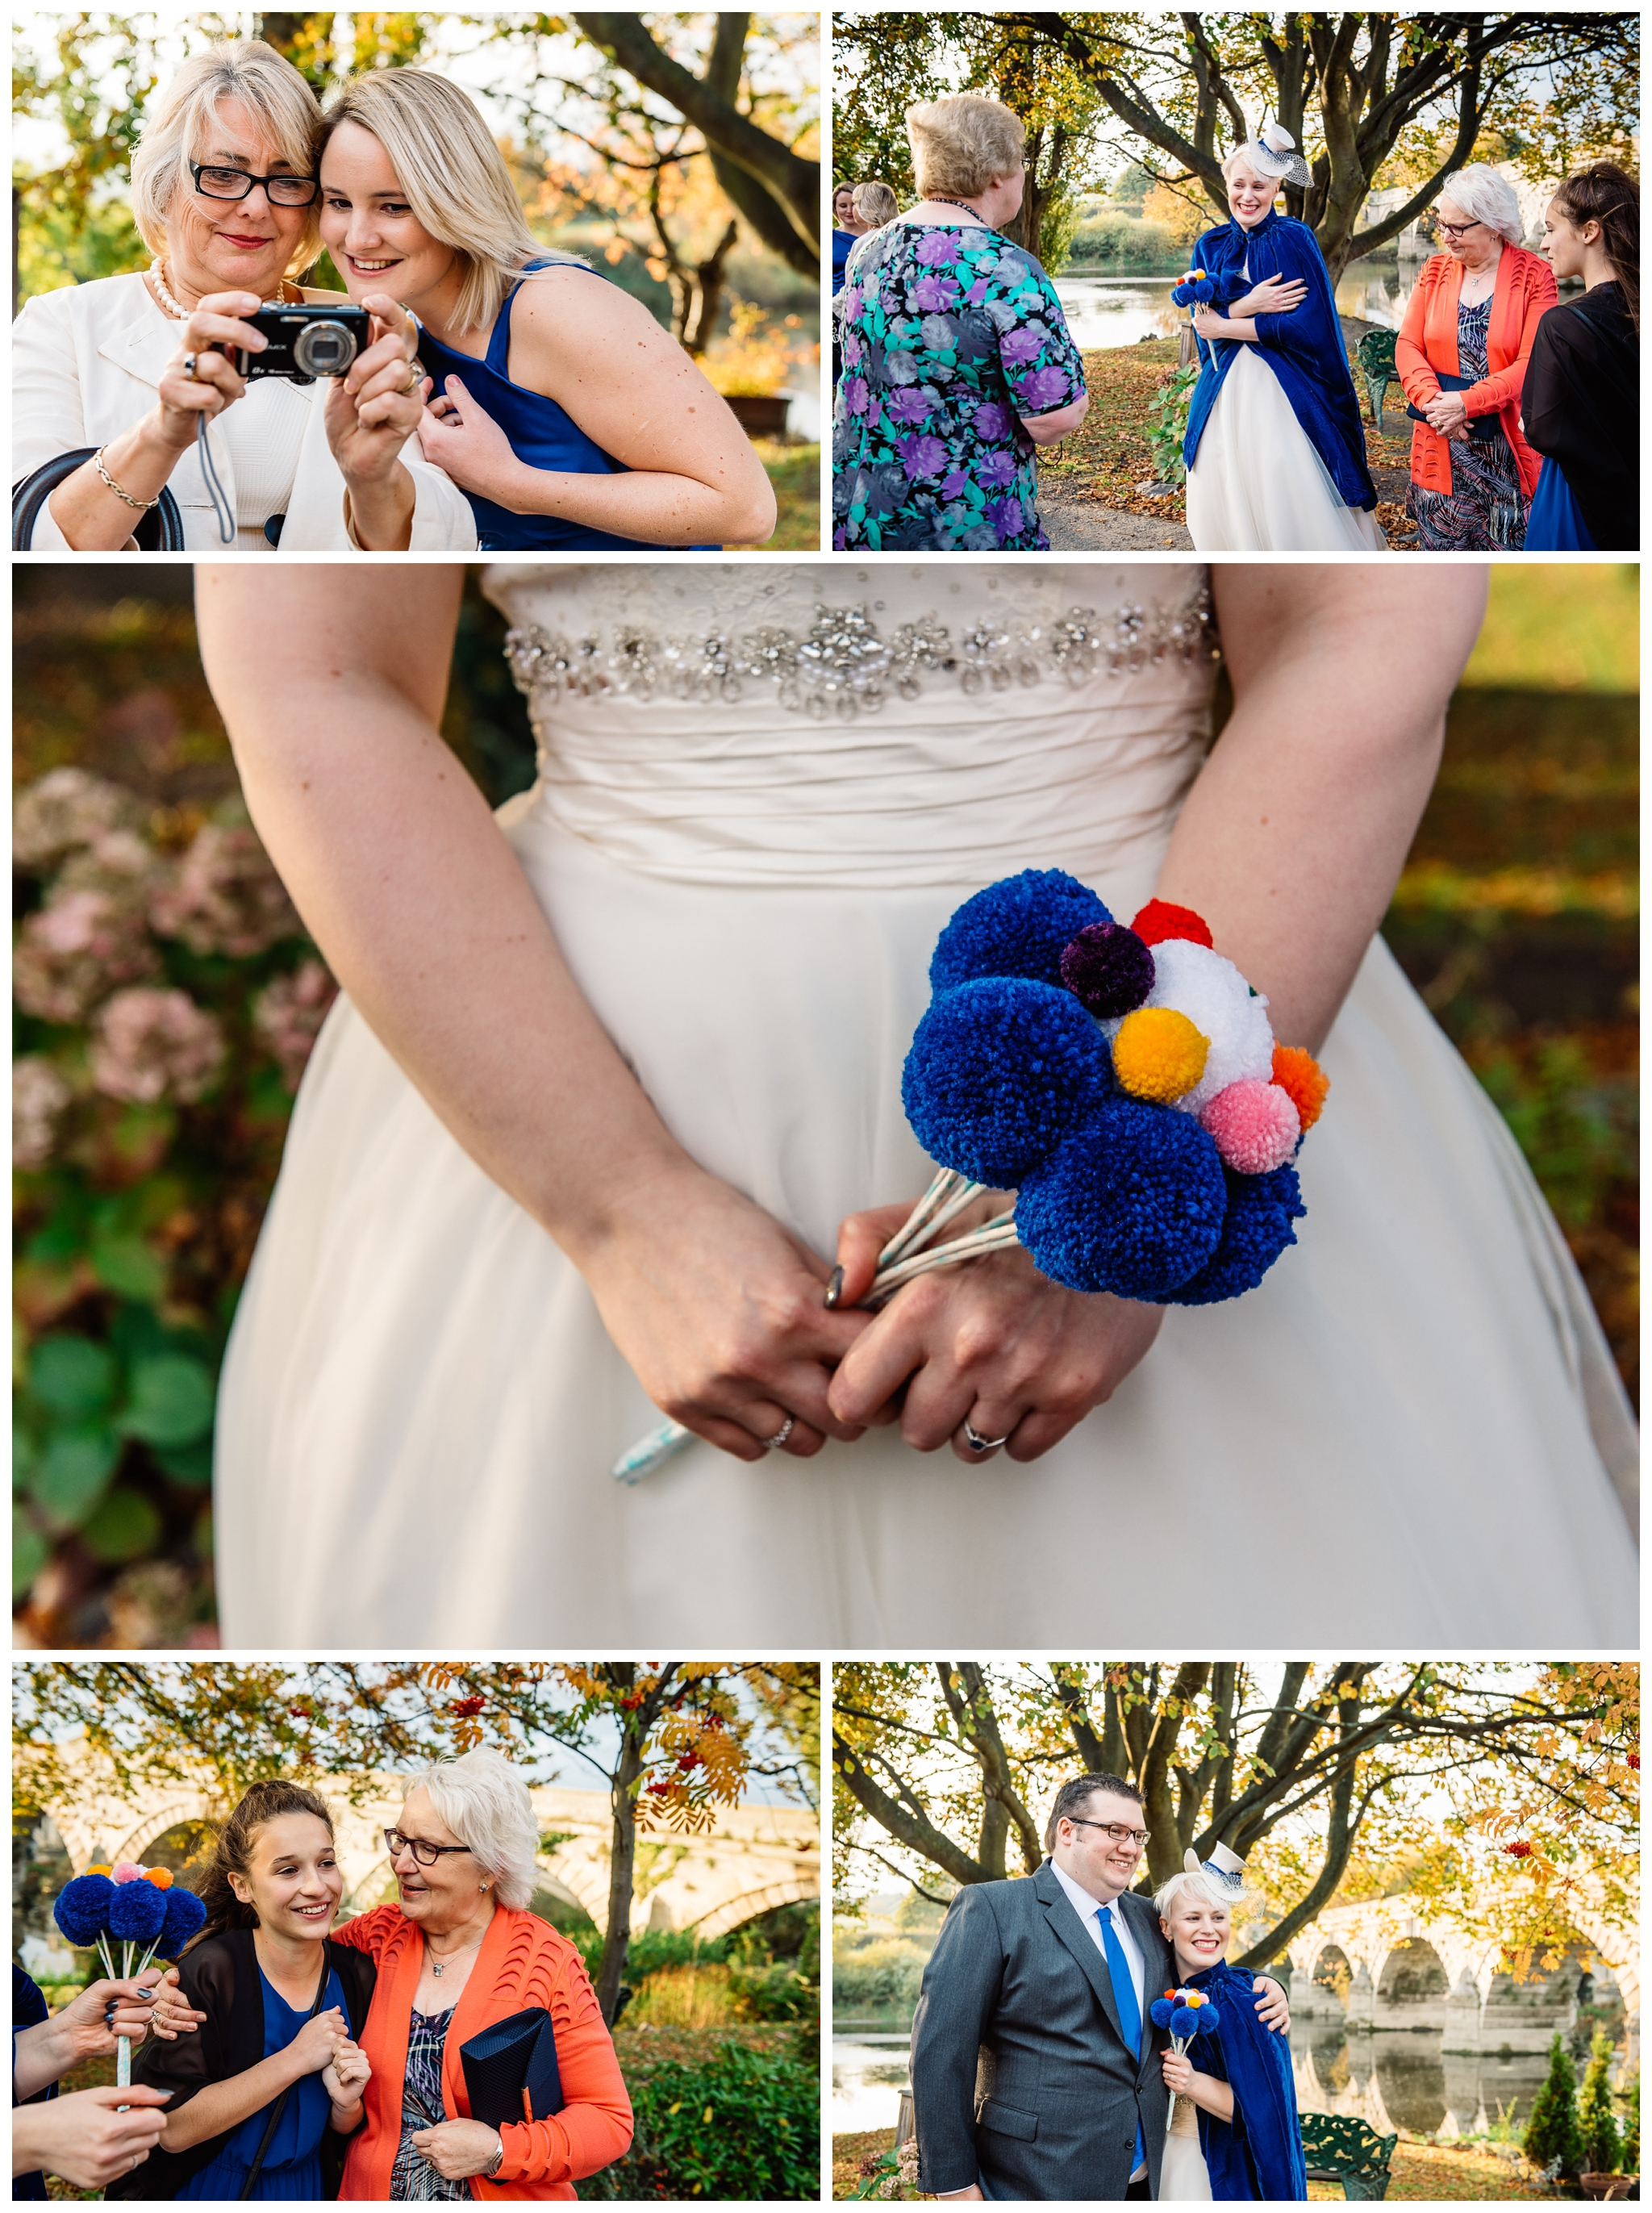 Nikki-Cooper-Photography-Autumn-Wedding-Shrewsbury_0028.jpg